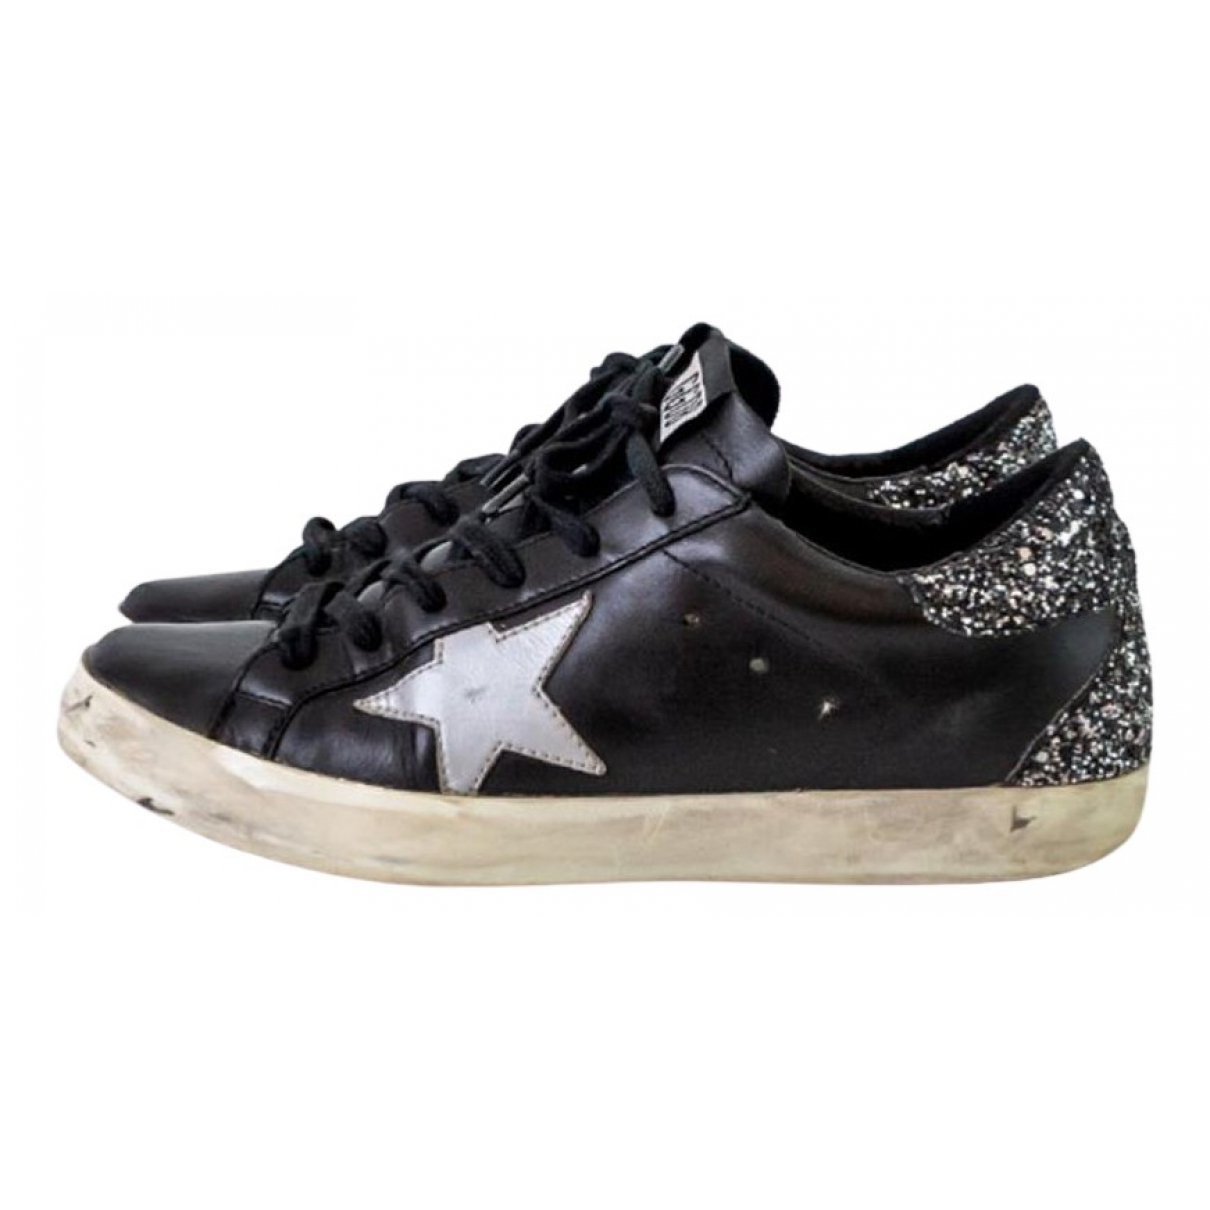 Golden Goose N Black Leather Trainers for Women 37 EU